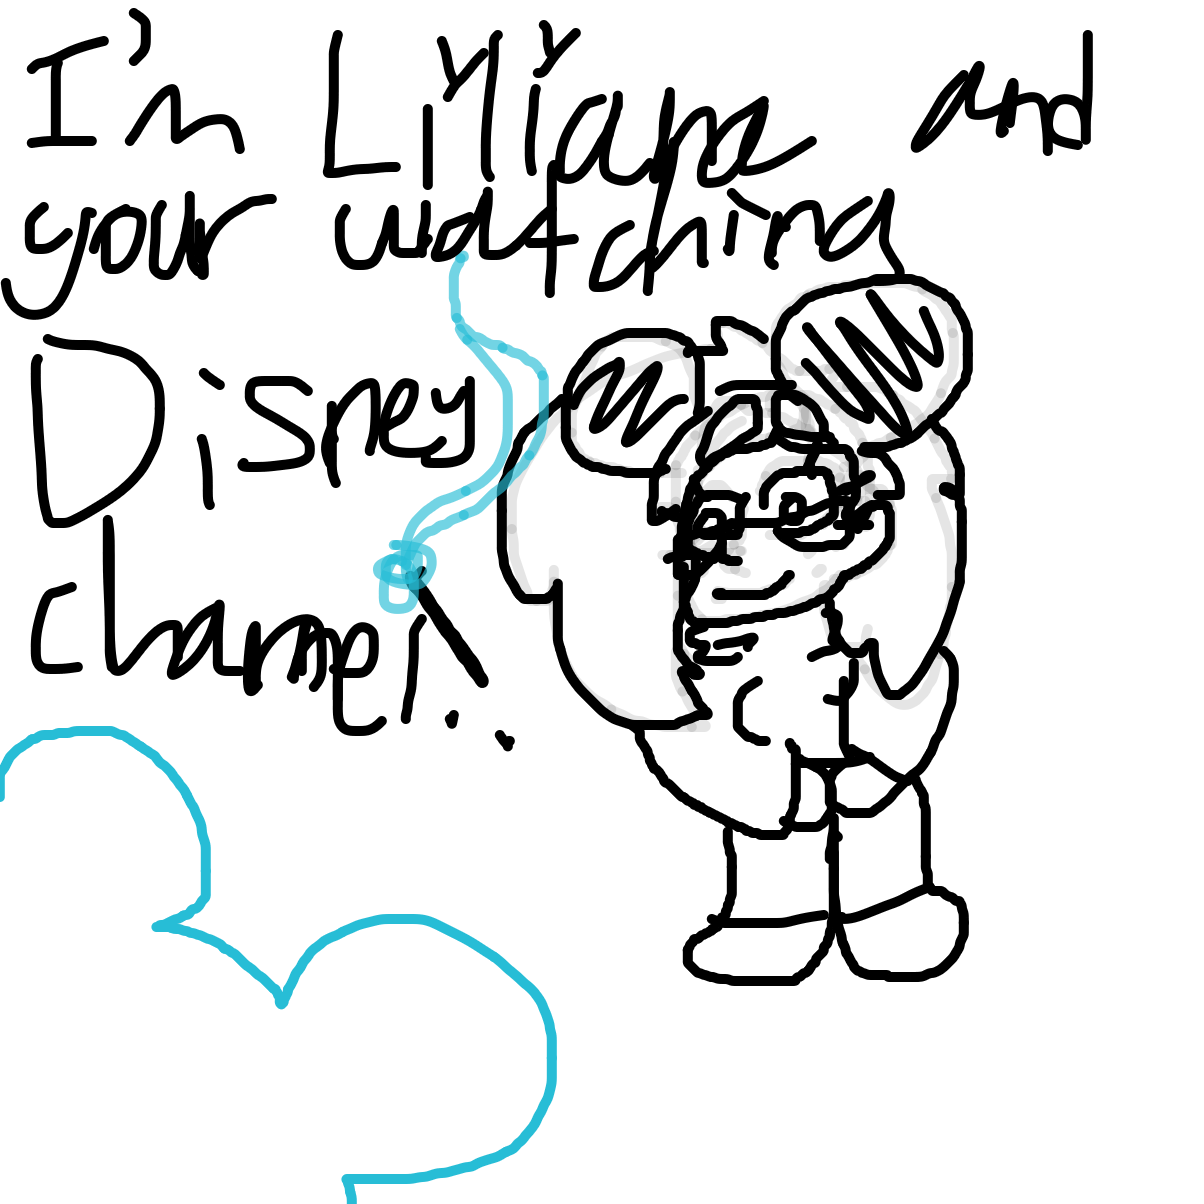 Yay DiSnEy ChanNeL - Online Drawing Game Comic Strip Panel by Liliana B